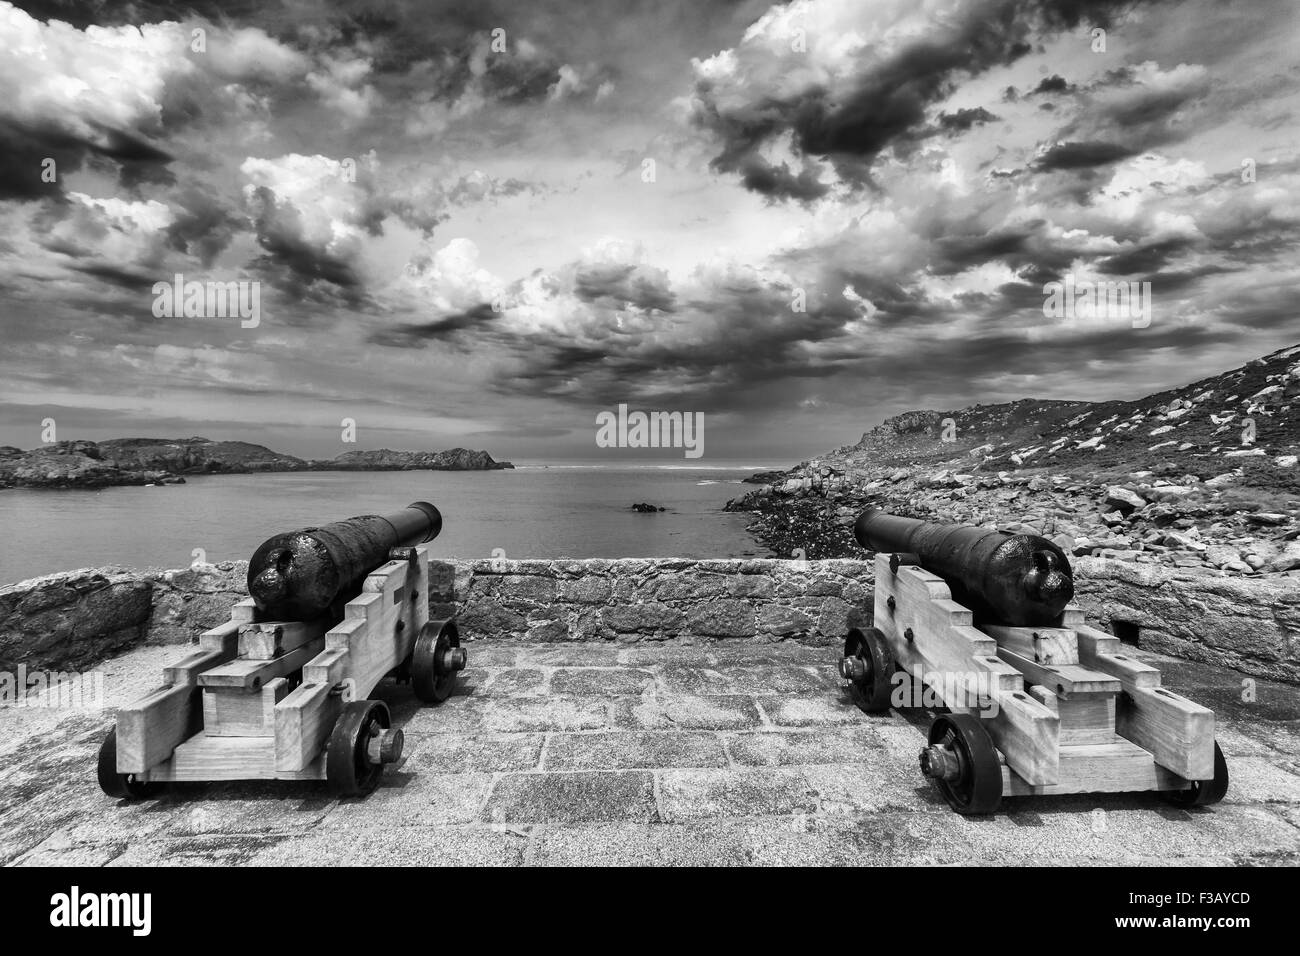 Cannons in Cromwell's Castle, Tresco, Isles of Scilly, UK - Stock Image